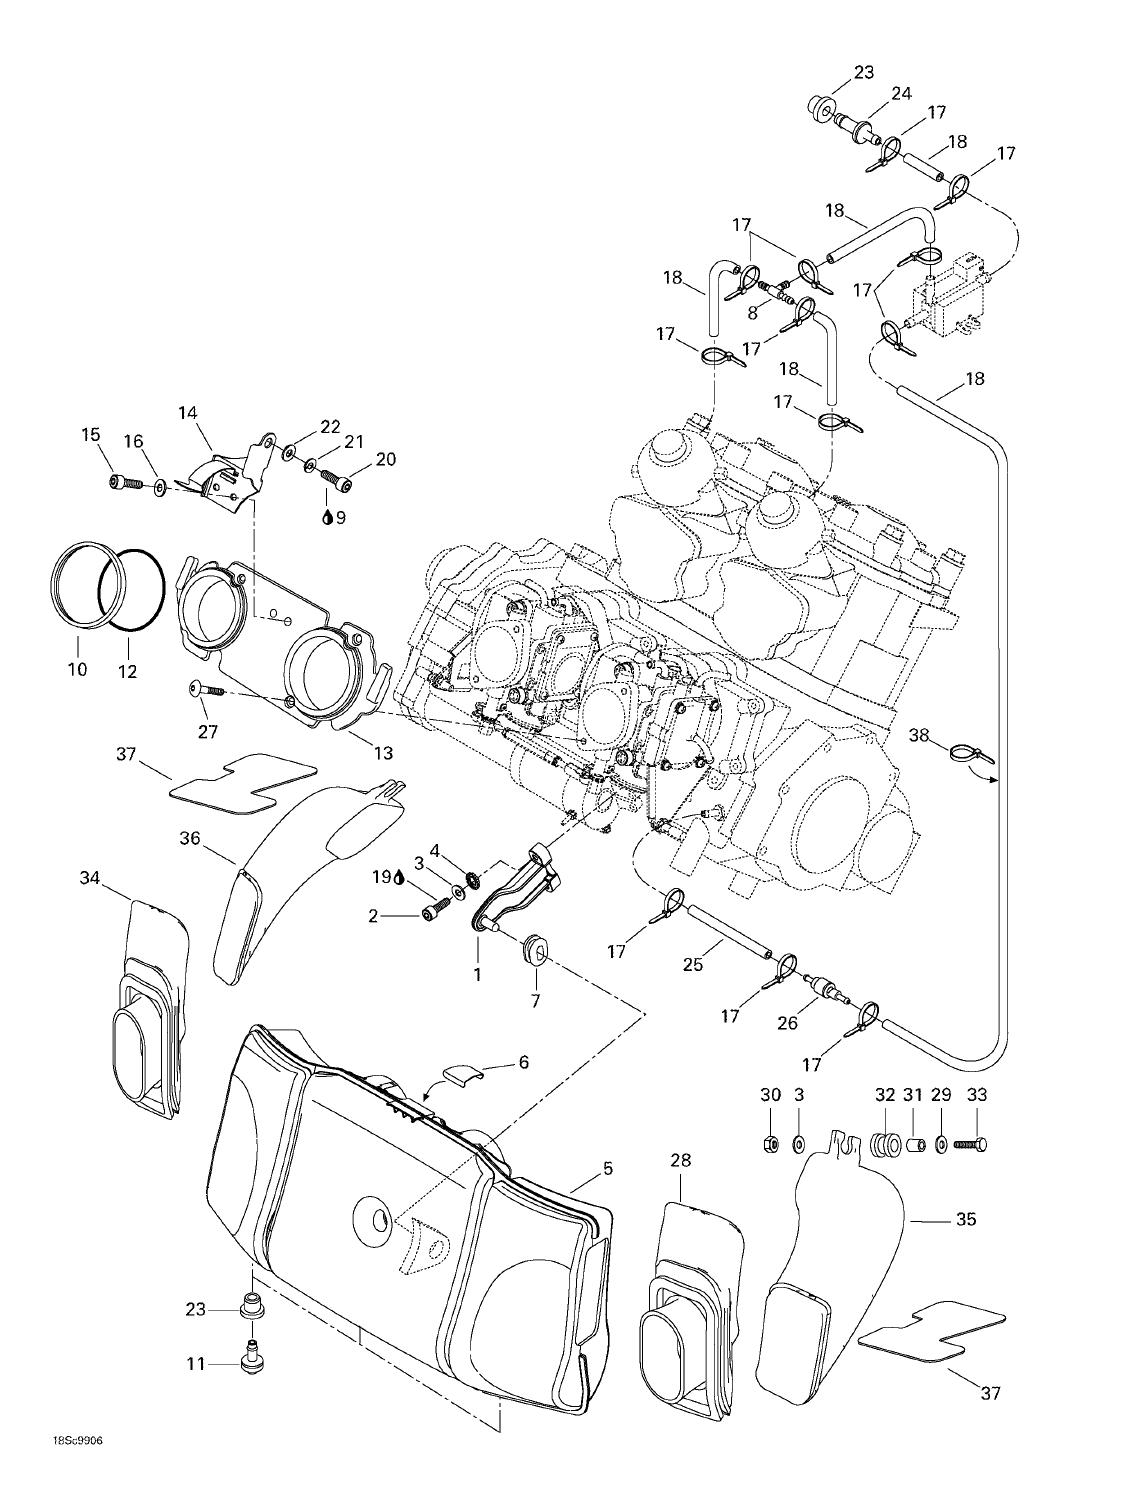 hight resolution of circuit diagram also seadoo 951 engine diagram oil also 2000 seadoo seadoo 951 engine diagram view diagram rotax engine rebuild seadoo